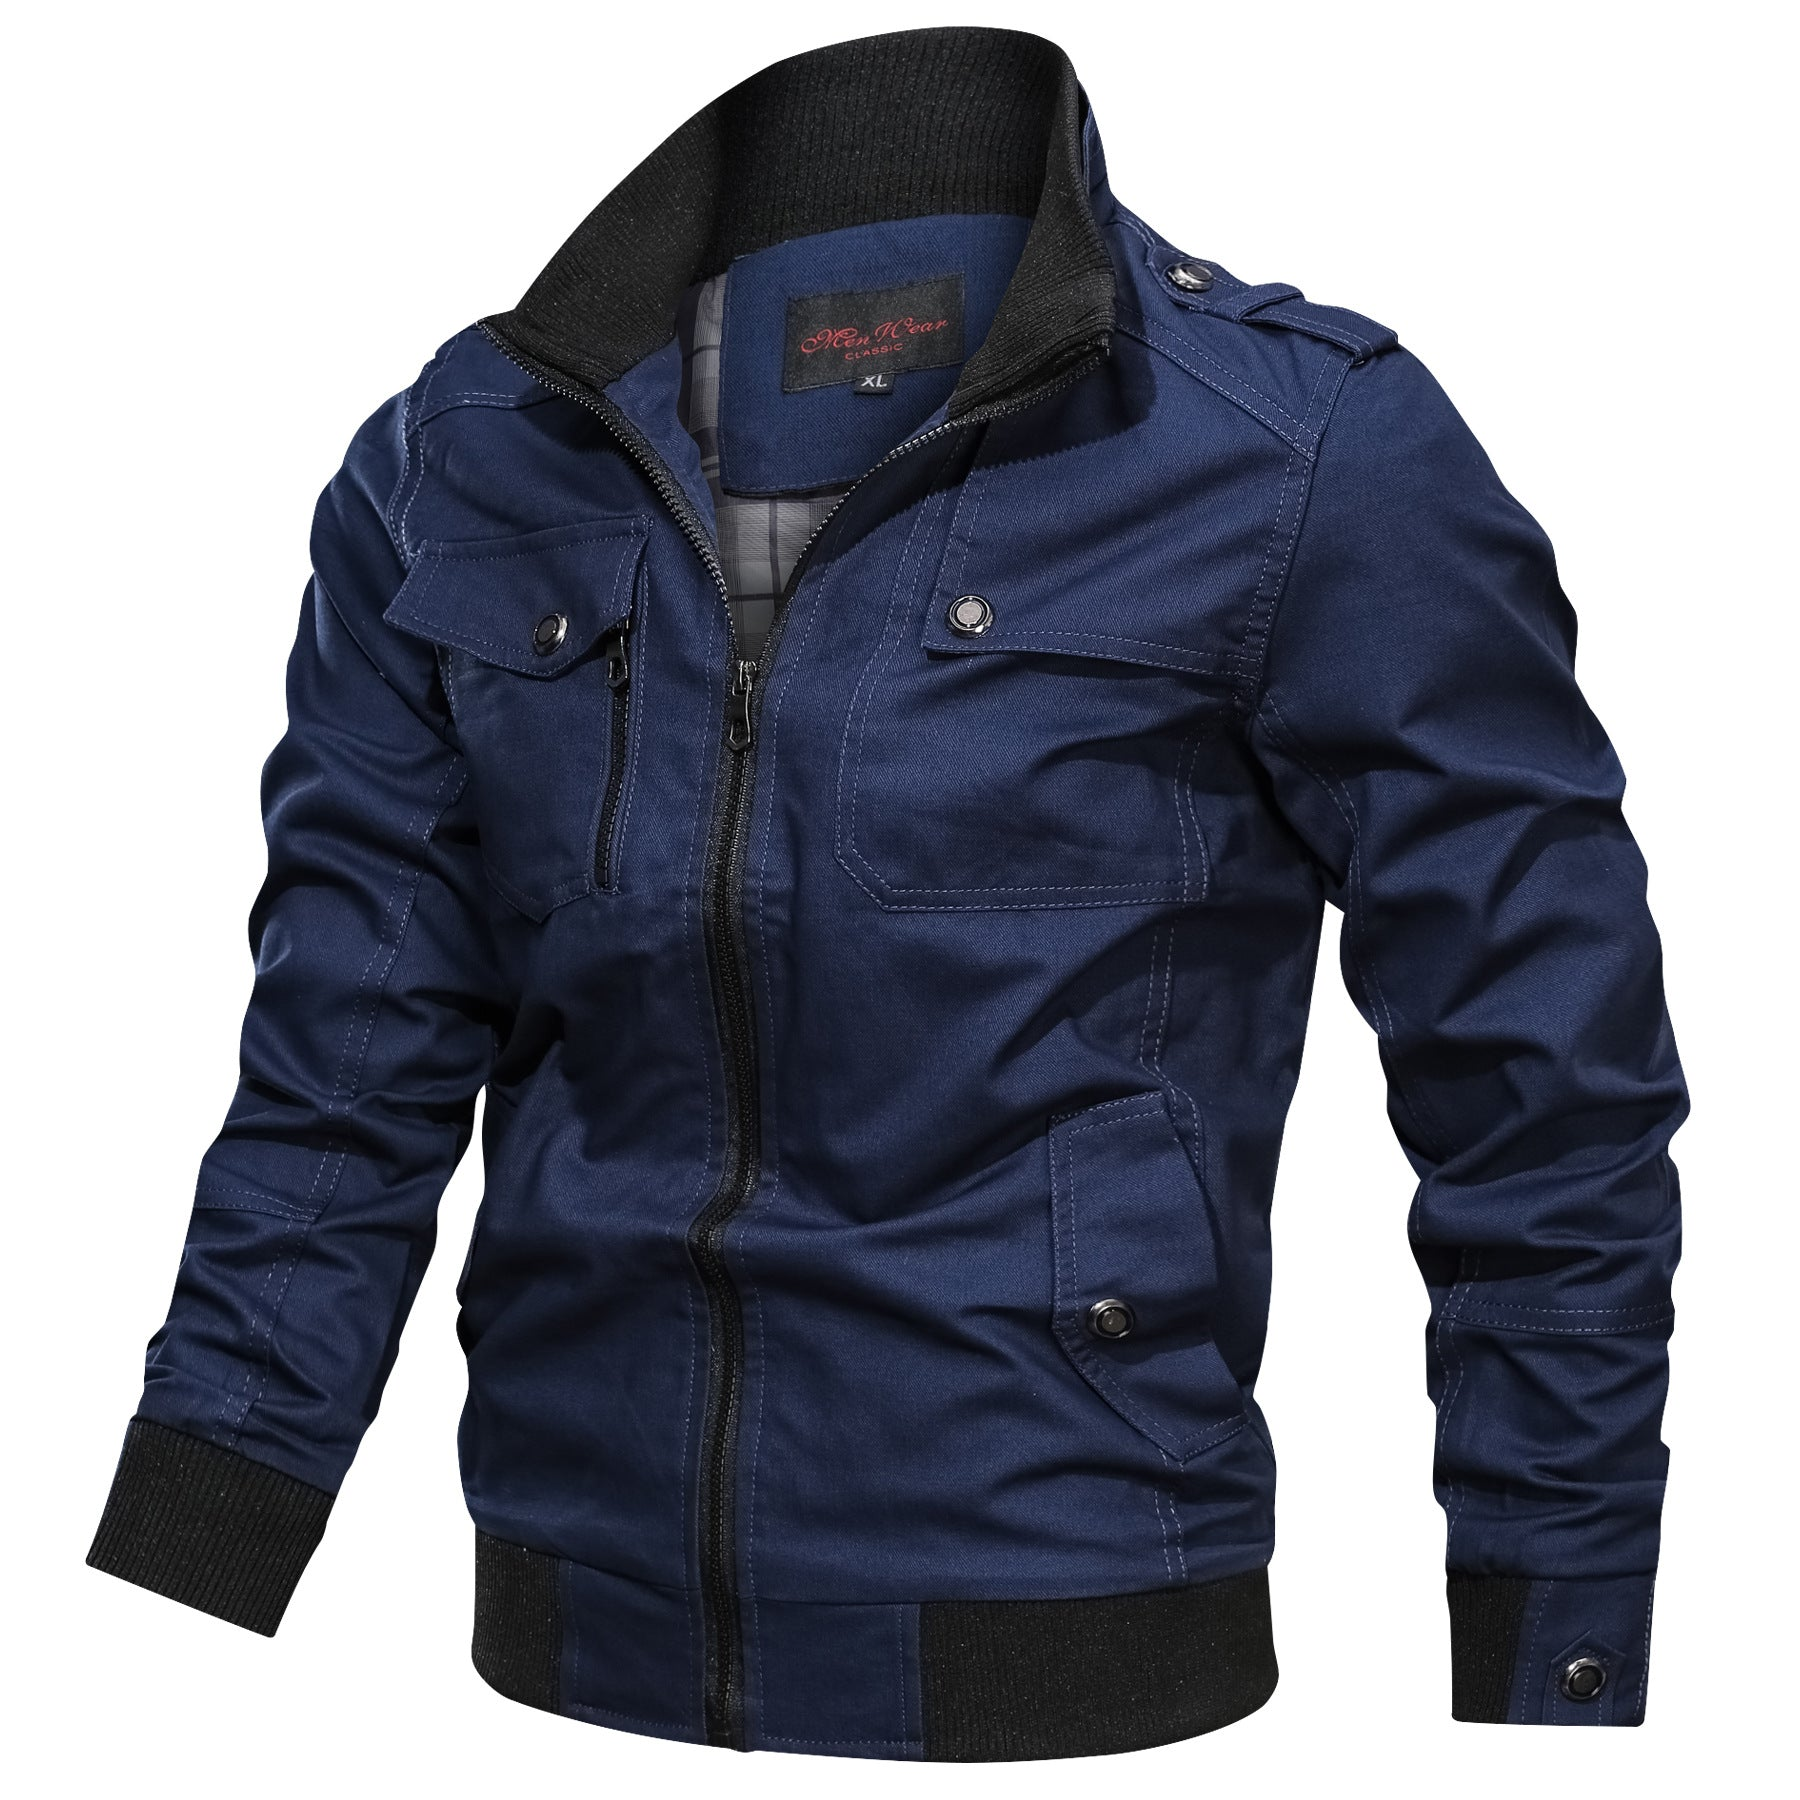 Men's Stand Collar Multi-Color Men's Jacket